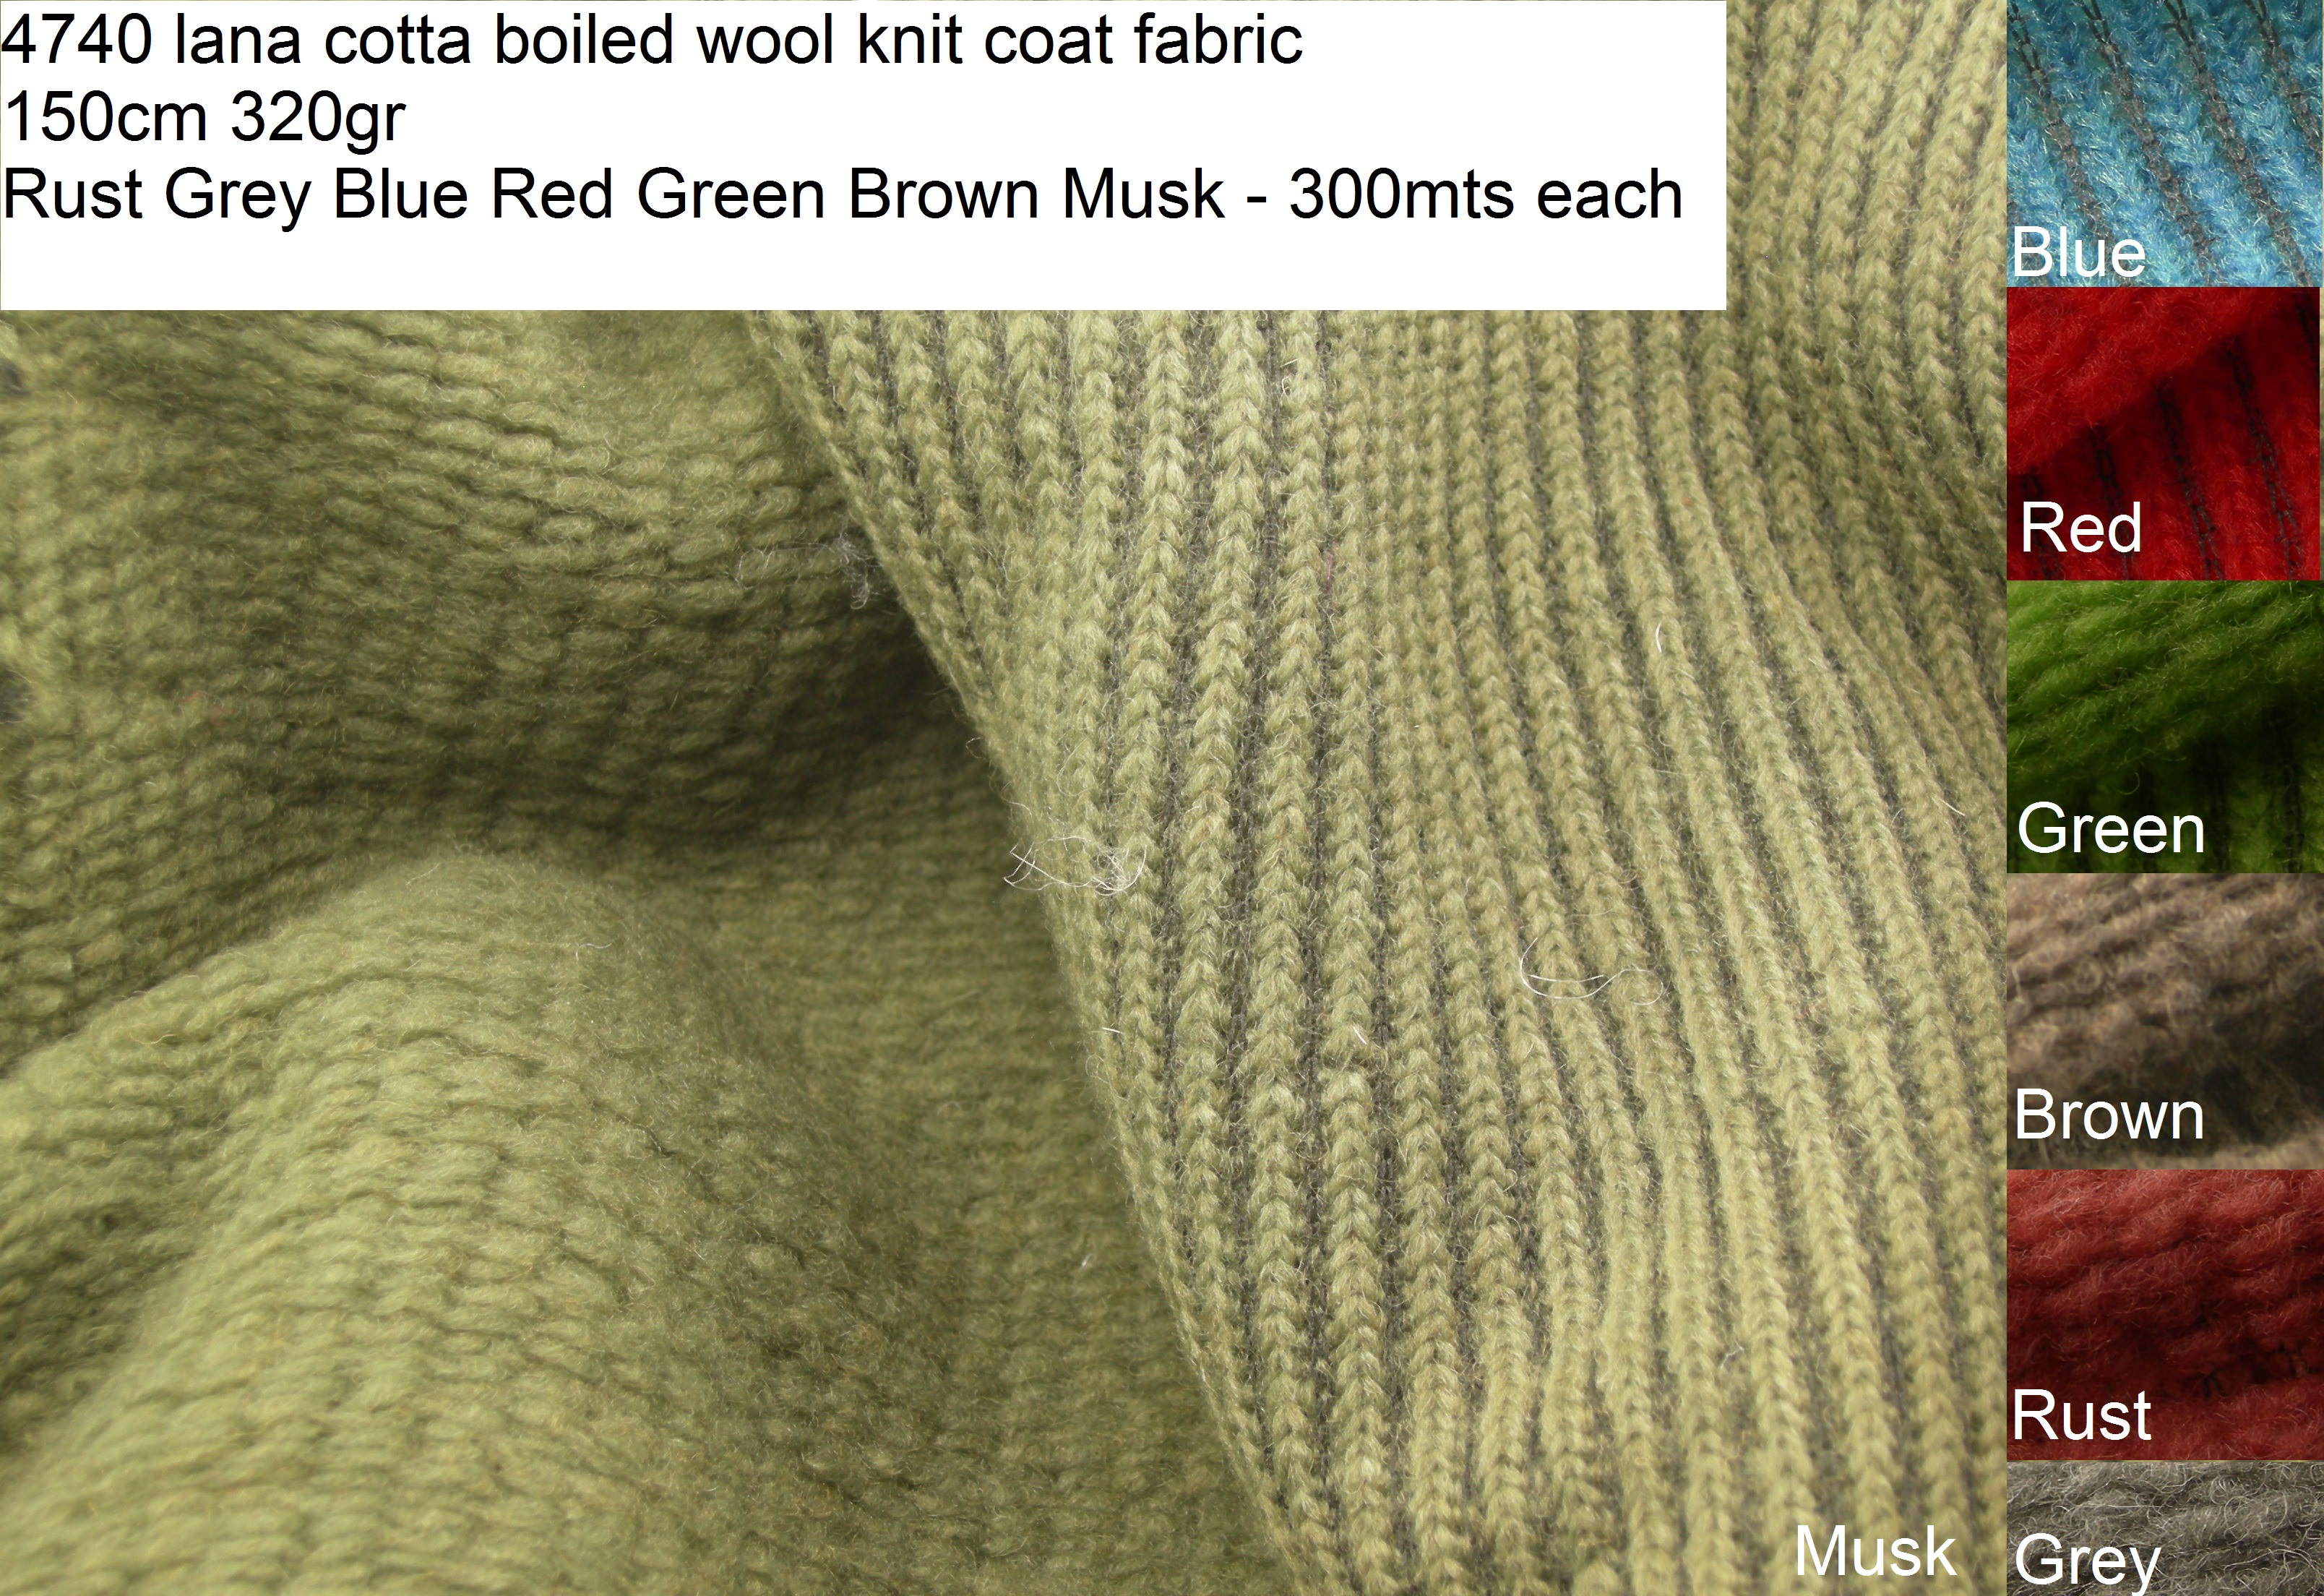 4740 lana cotta boiled wool knit coat fabric 150cm 320gr - Rust Grey Blue Red Green Brown Musk - 300mts each